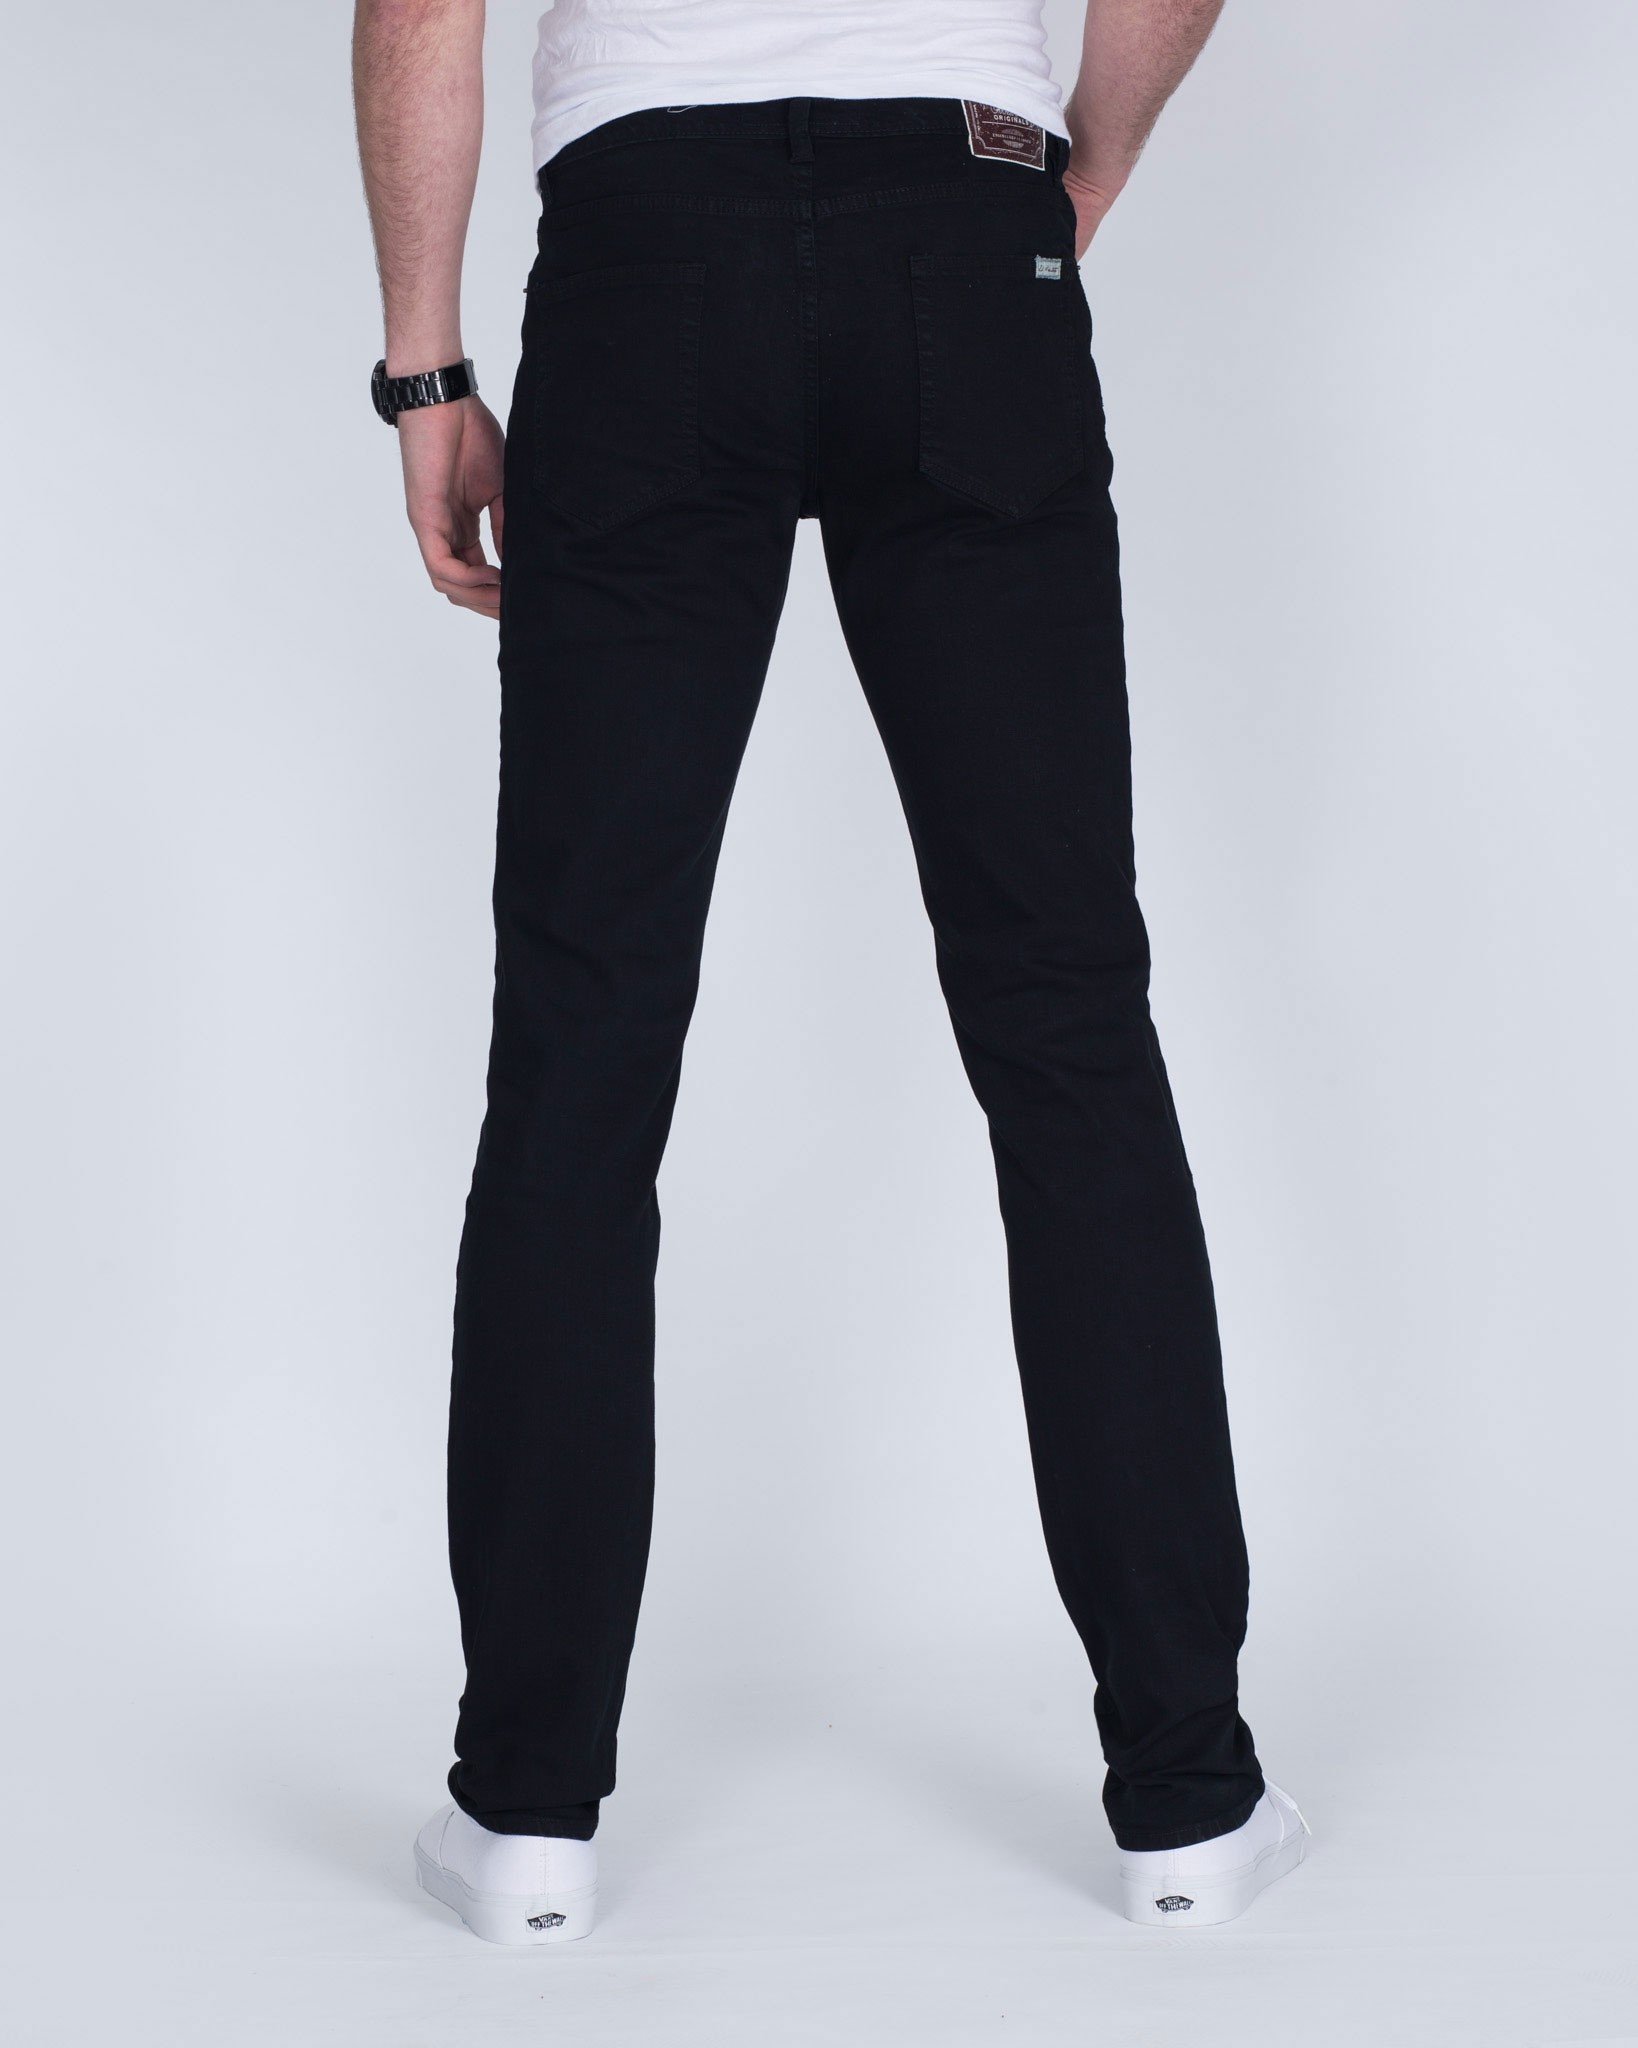 2tall-exclusive-black-back